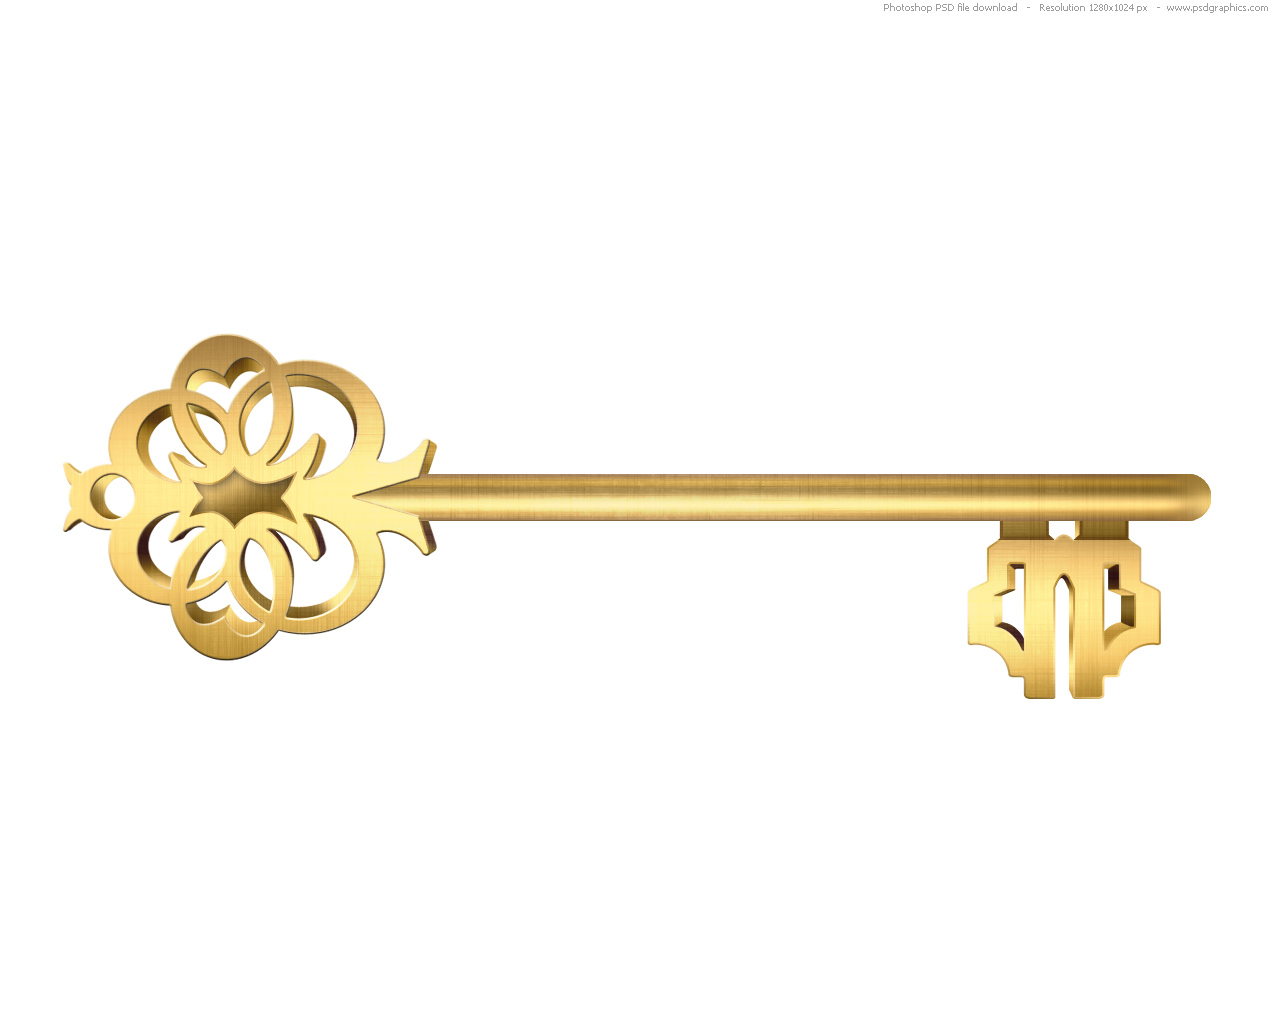 Free Golden Key Cliparts, Download Free Clip Art, Free Clip Art on.